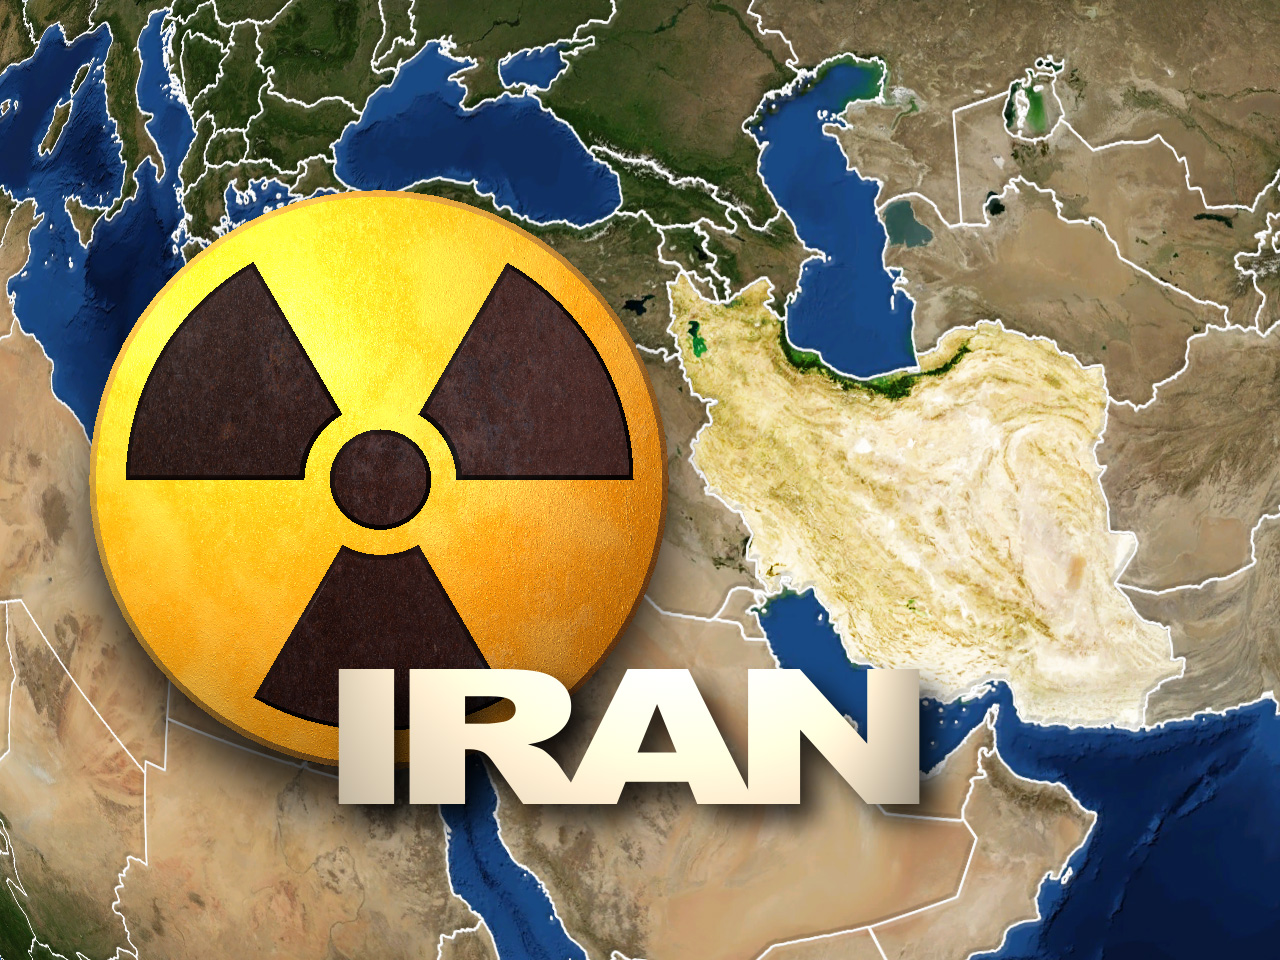 Iran developing nuclear-capable missiles